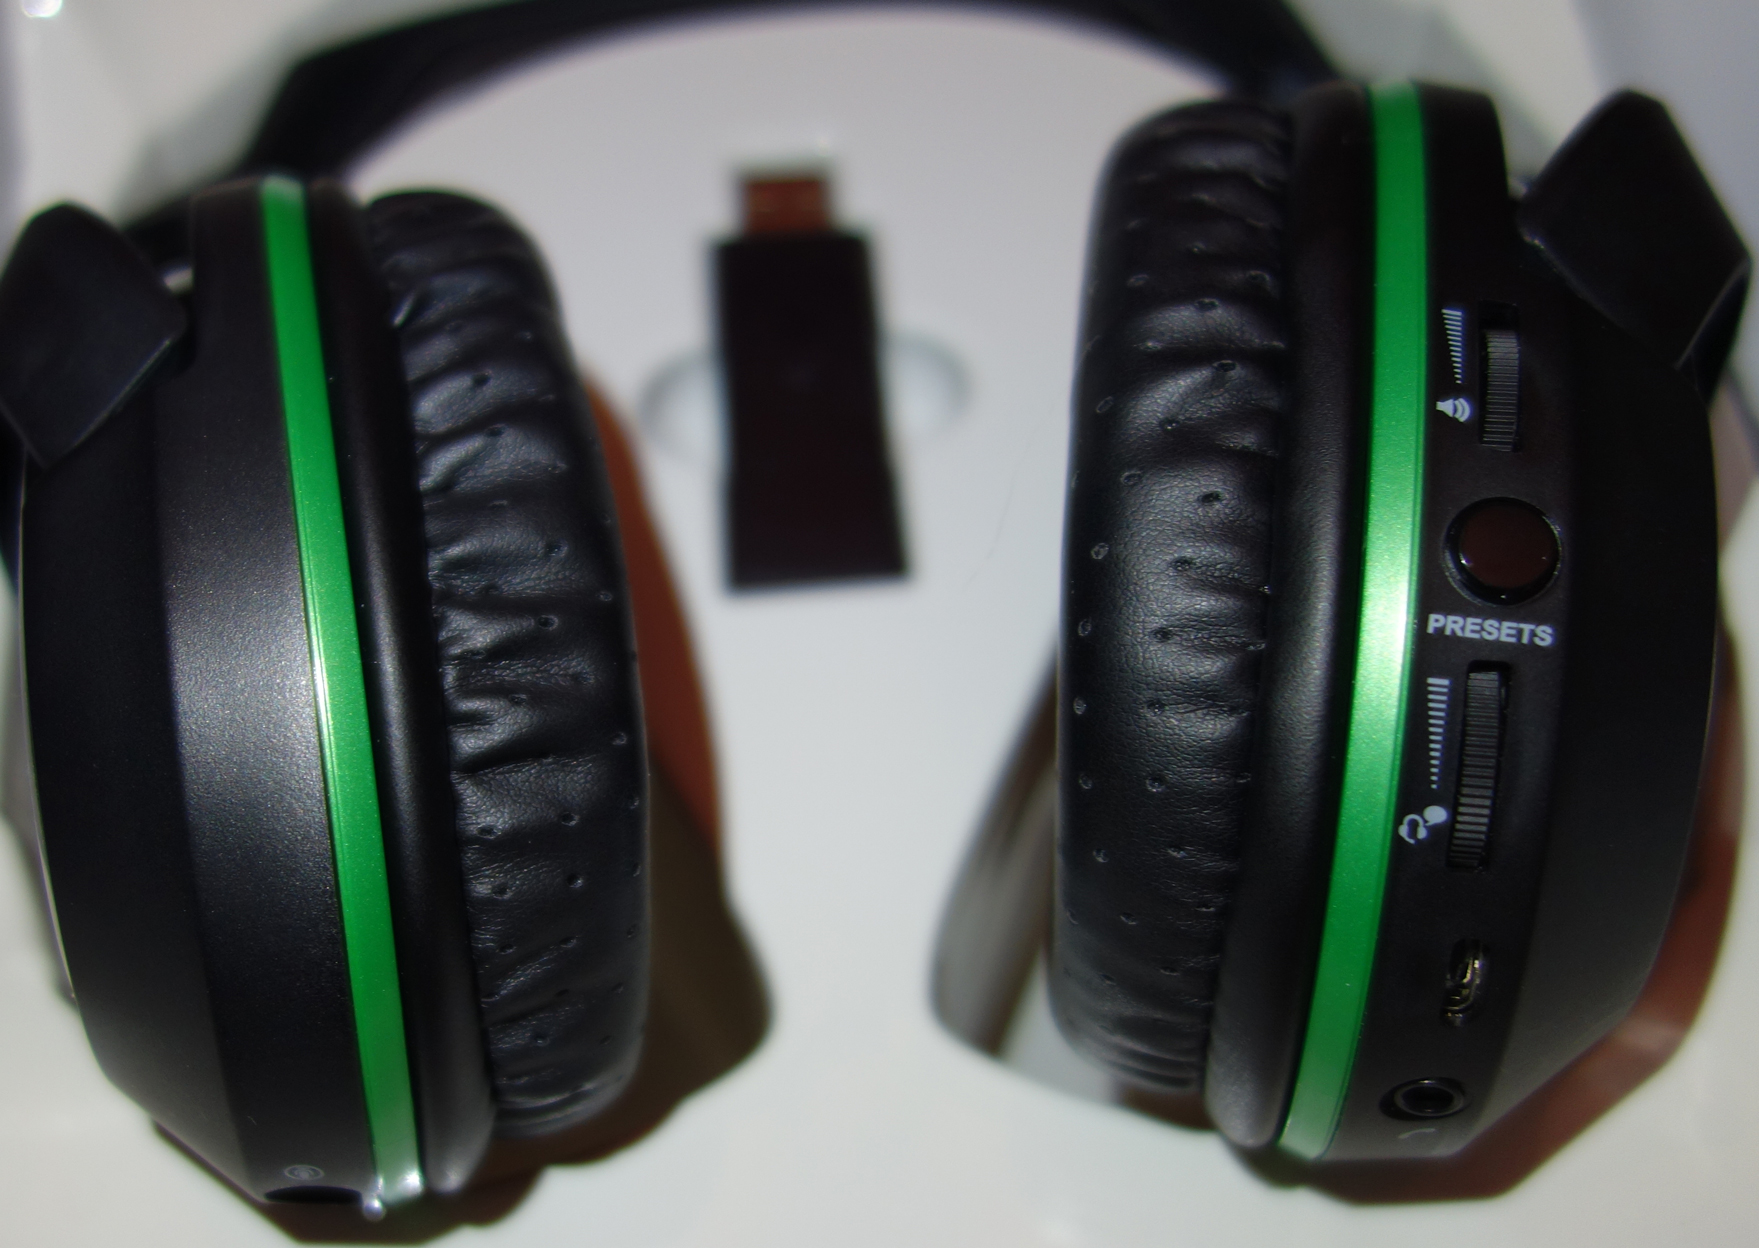 Turtle Beach Ear Force Stealth 420X volume preset controls